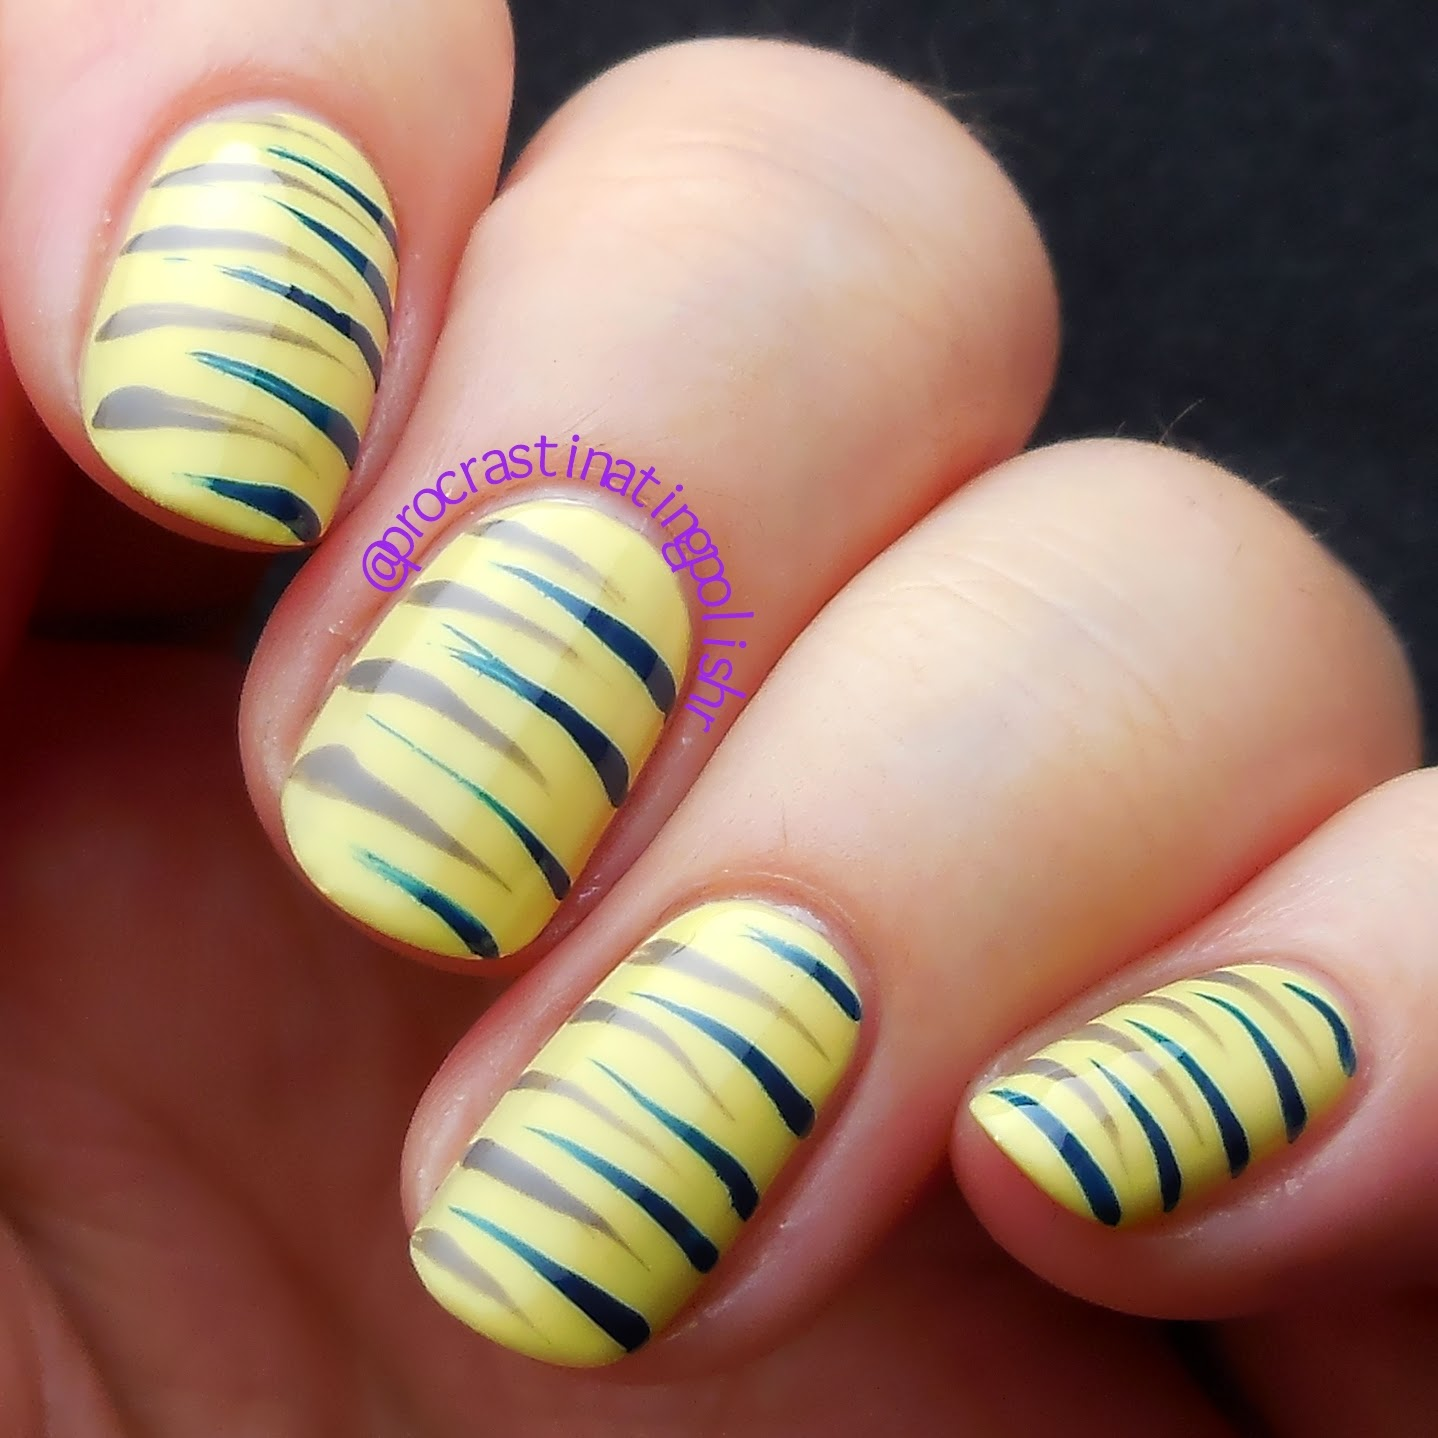 31 Day Challenge 2014 Day 12 - Stripes